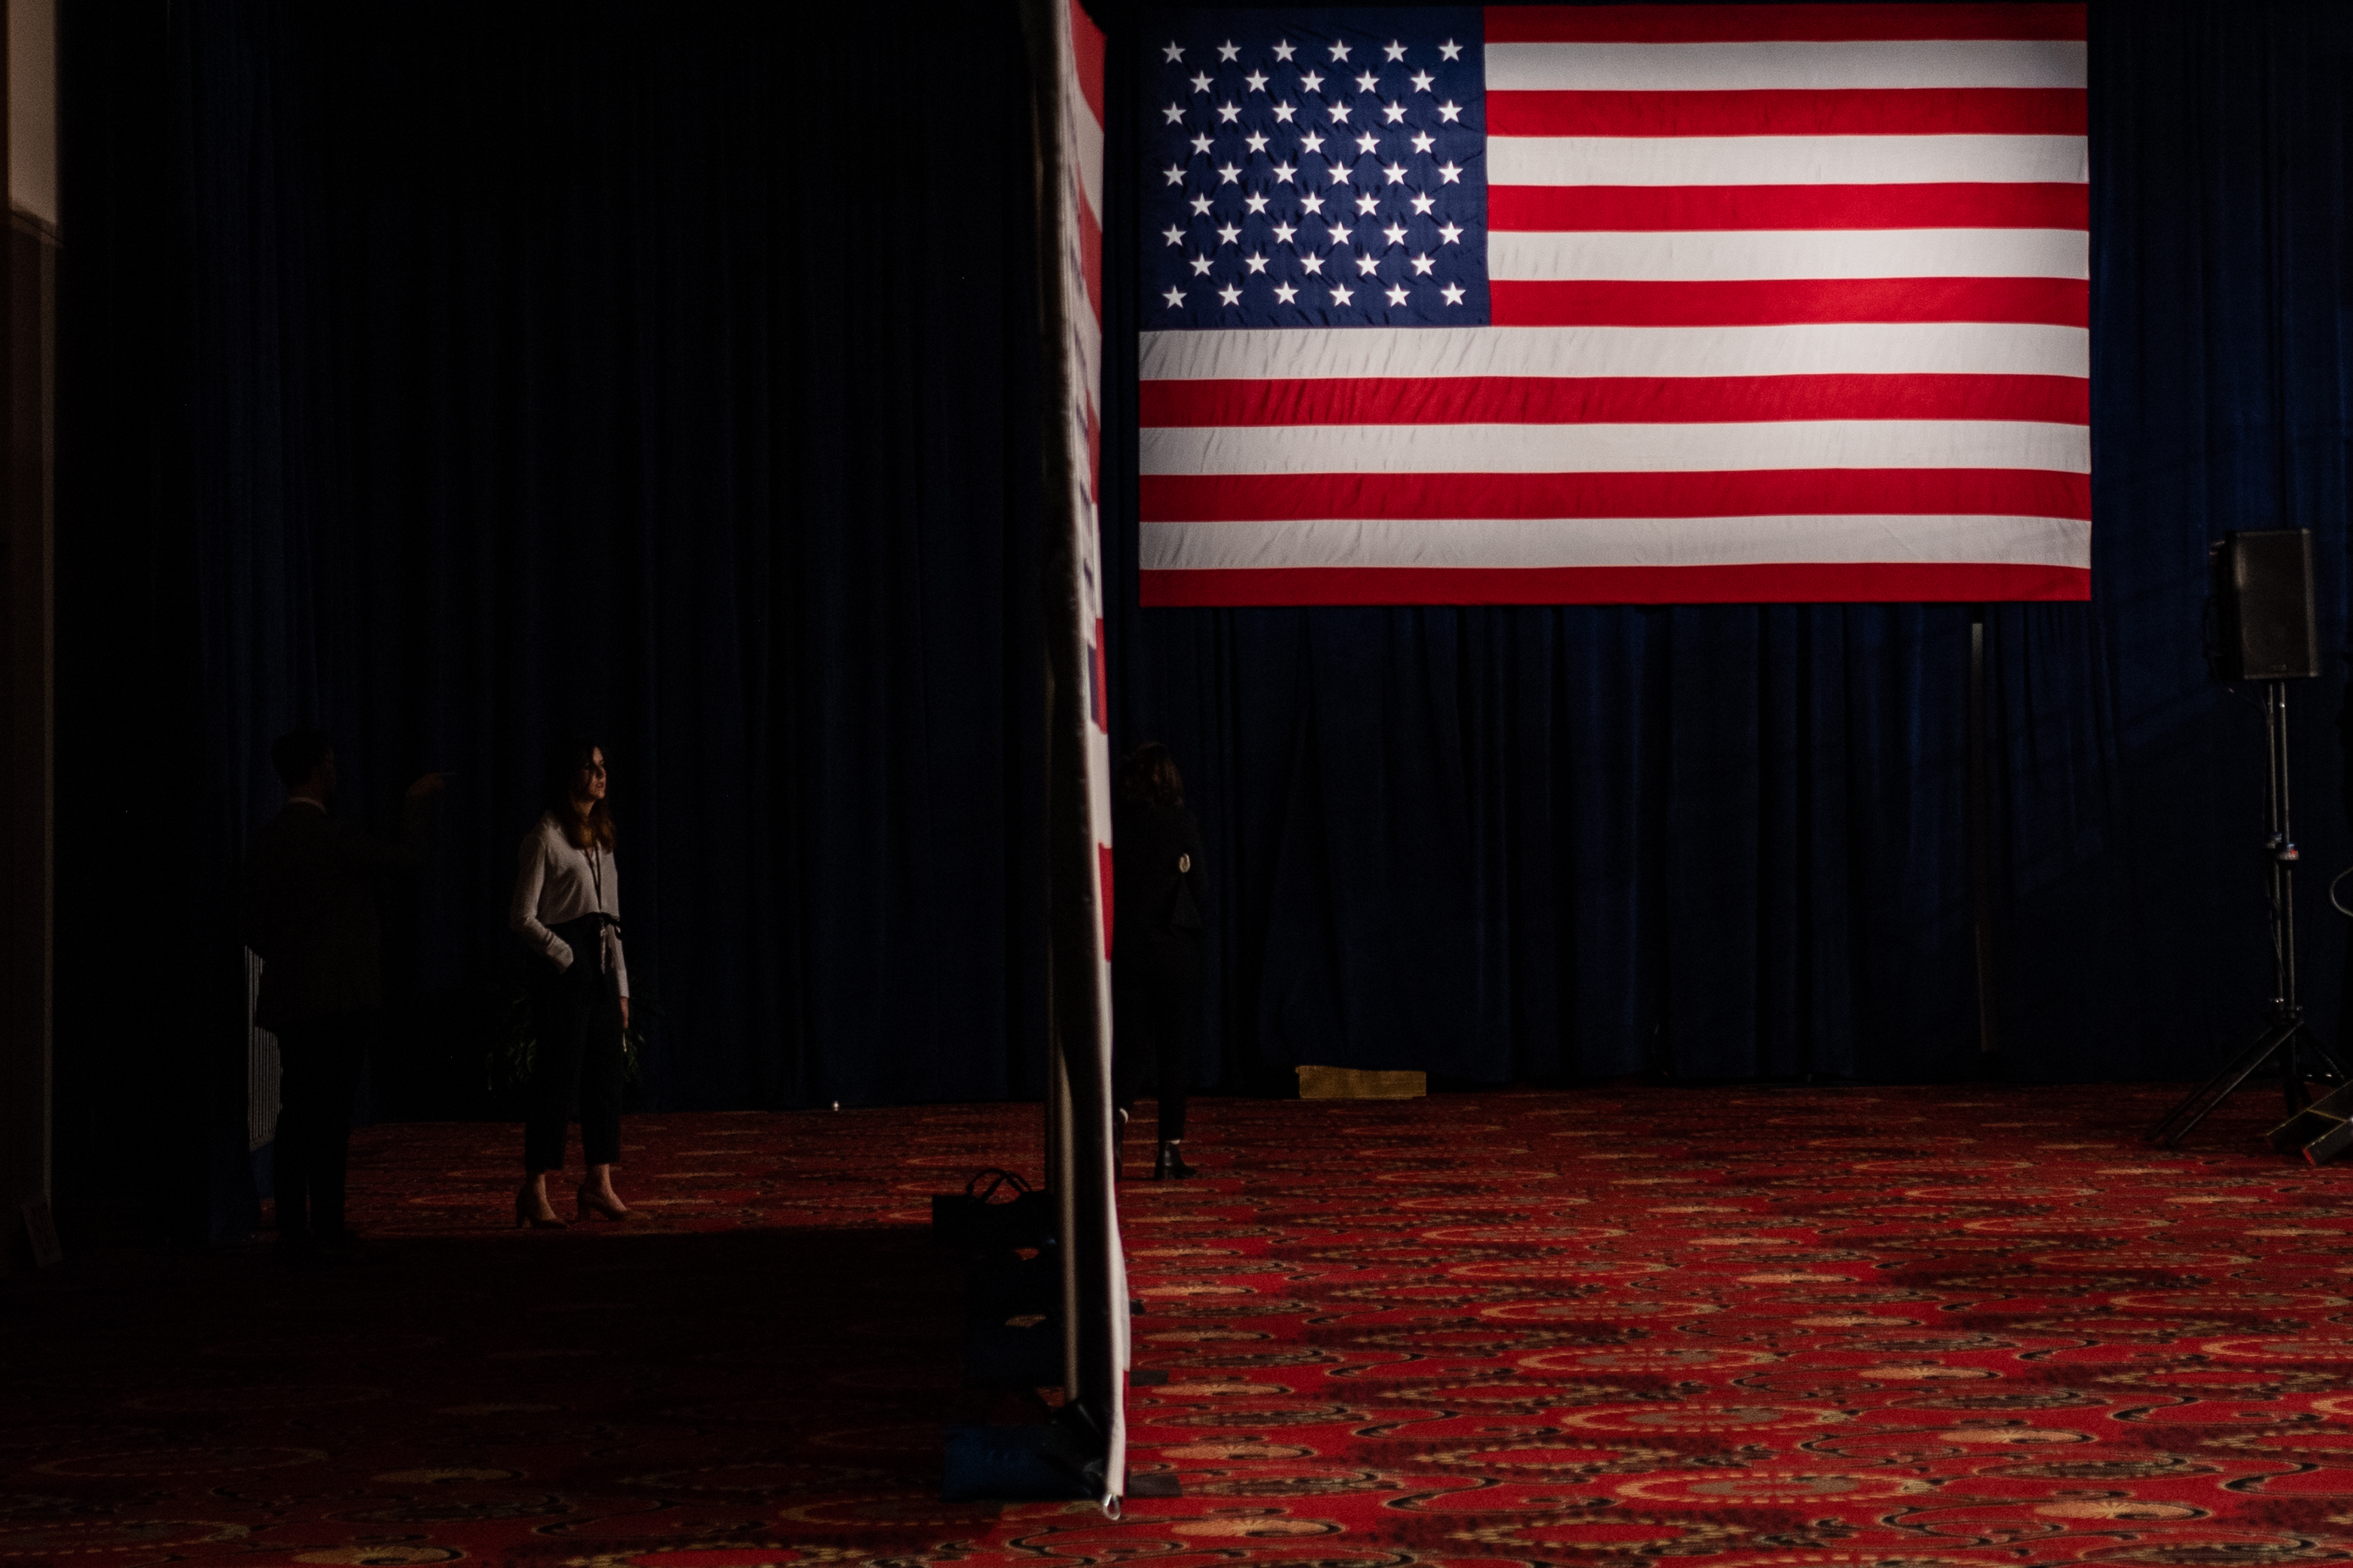 A staffer stands in the shadow ahead of the Bernie Sanders caucus night celebration in Des Moines, Iowa.